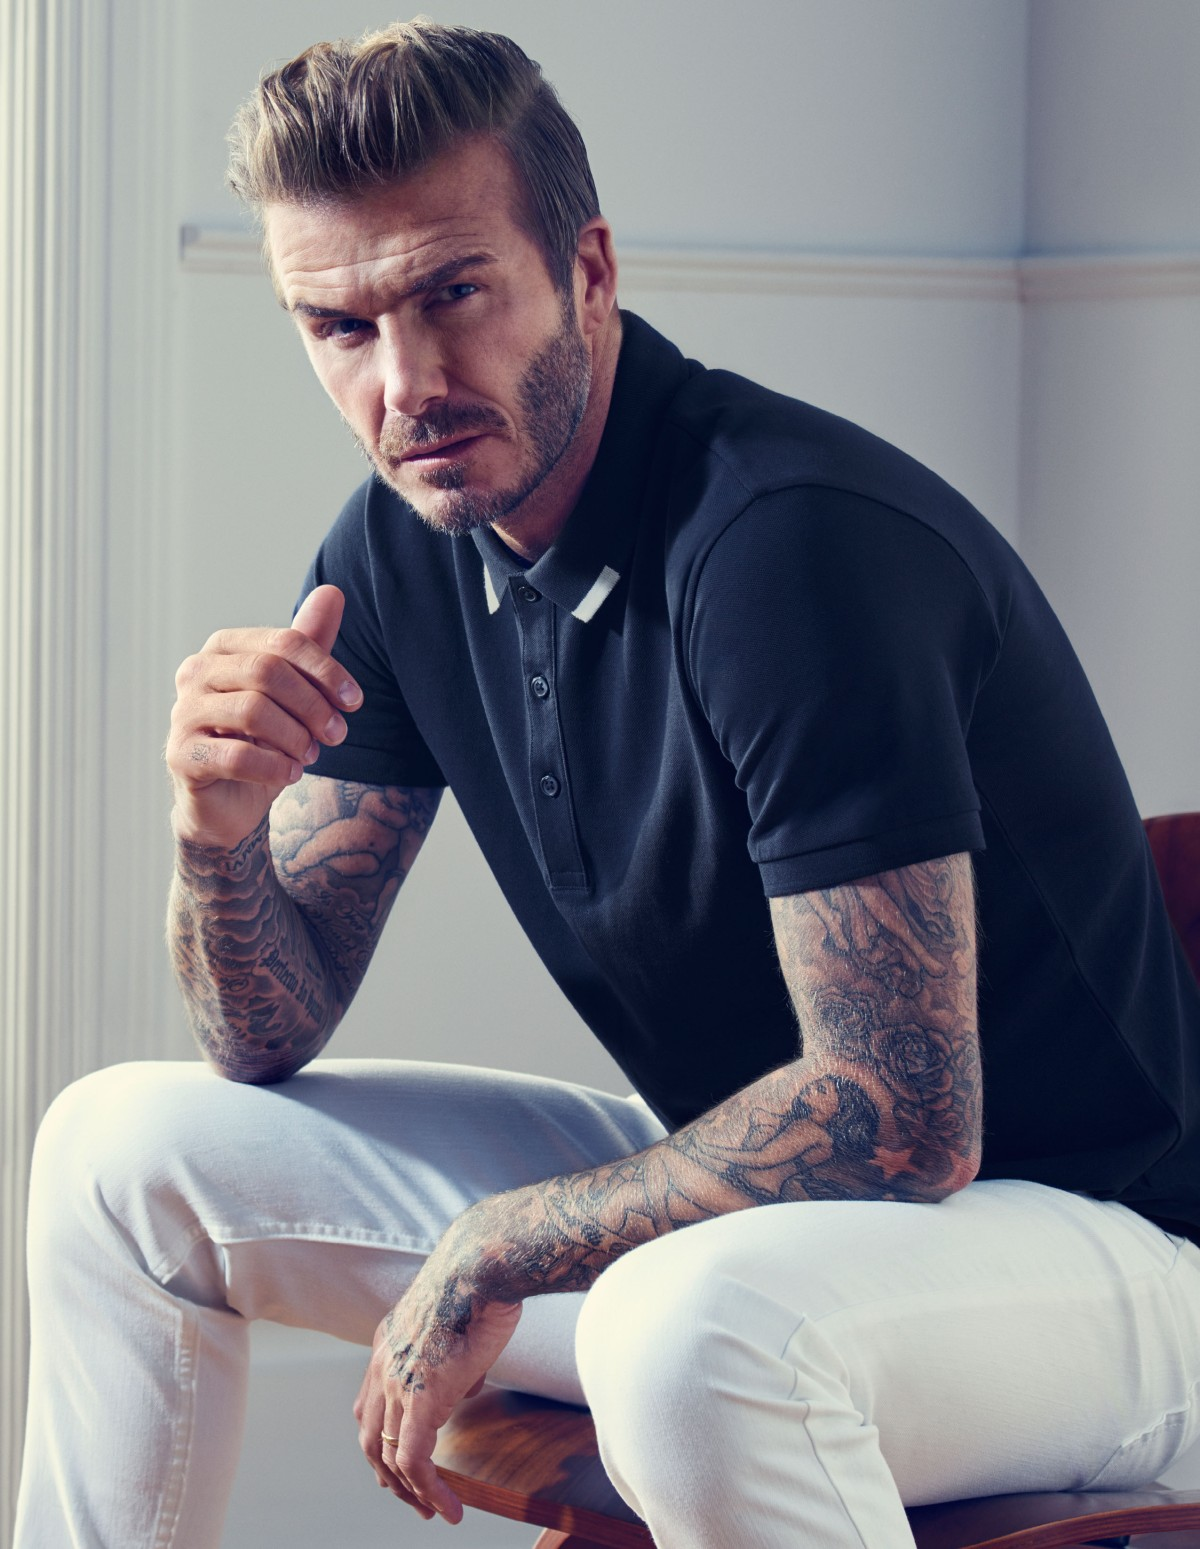 H&M's Modern Essentials Selected by David Beckham